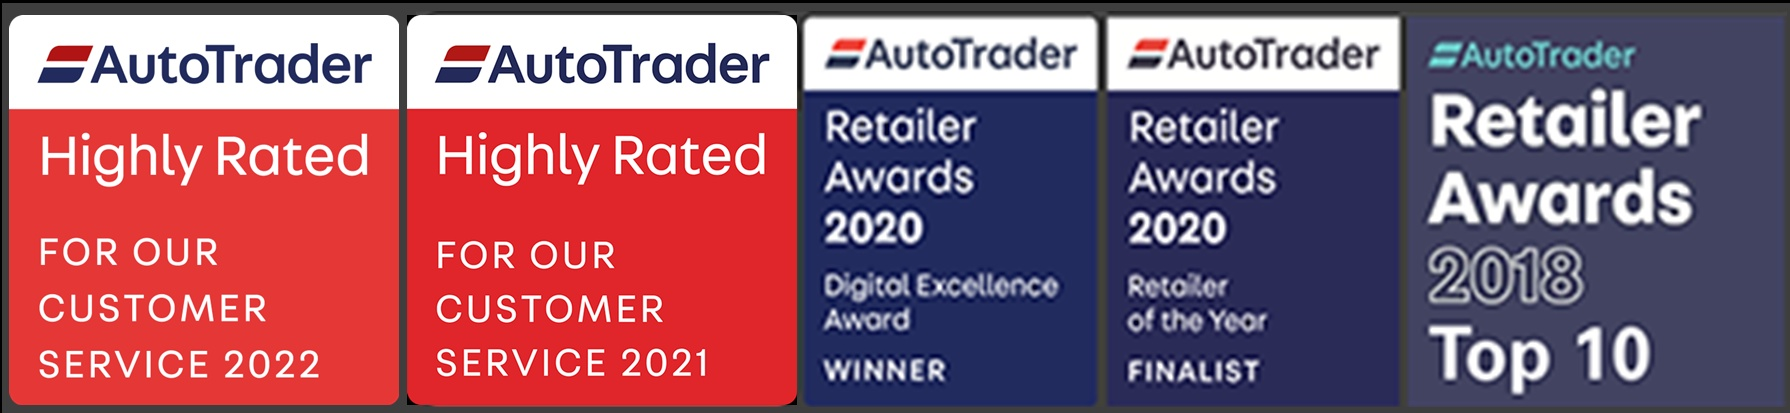 Autotrader Retail Awards 2018 - Top10 UK dealers